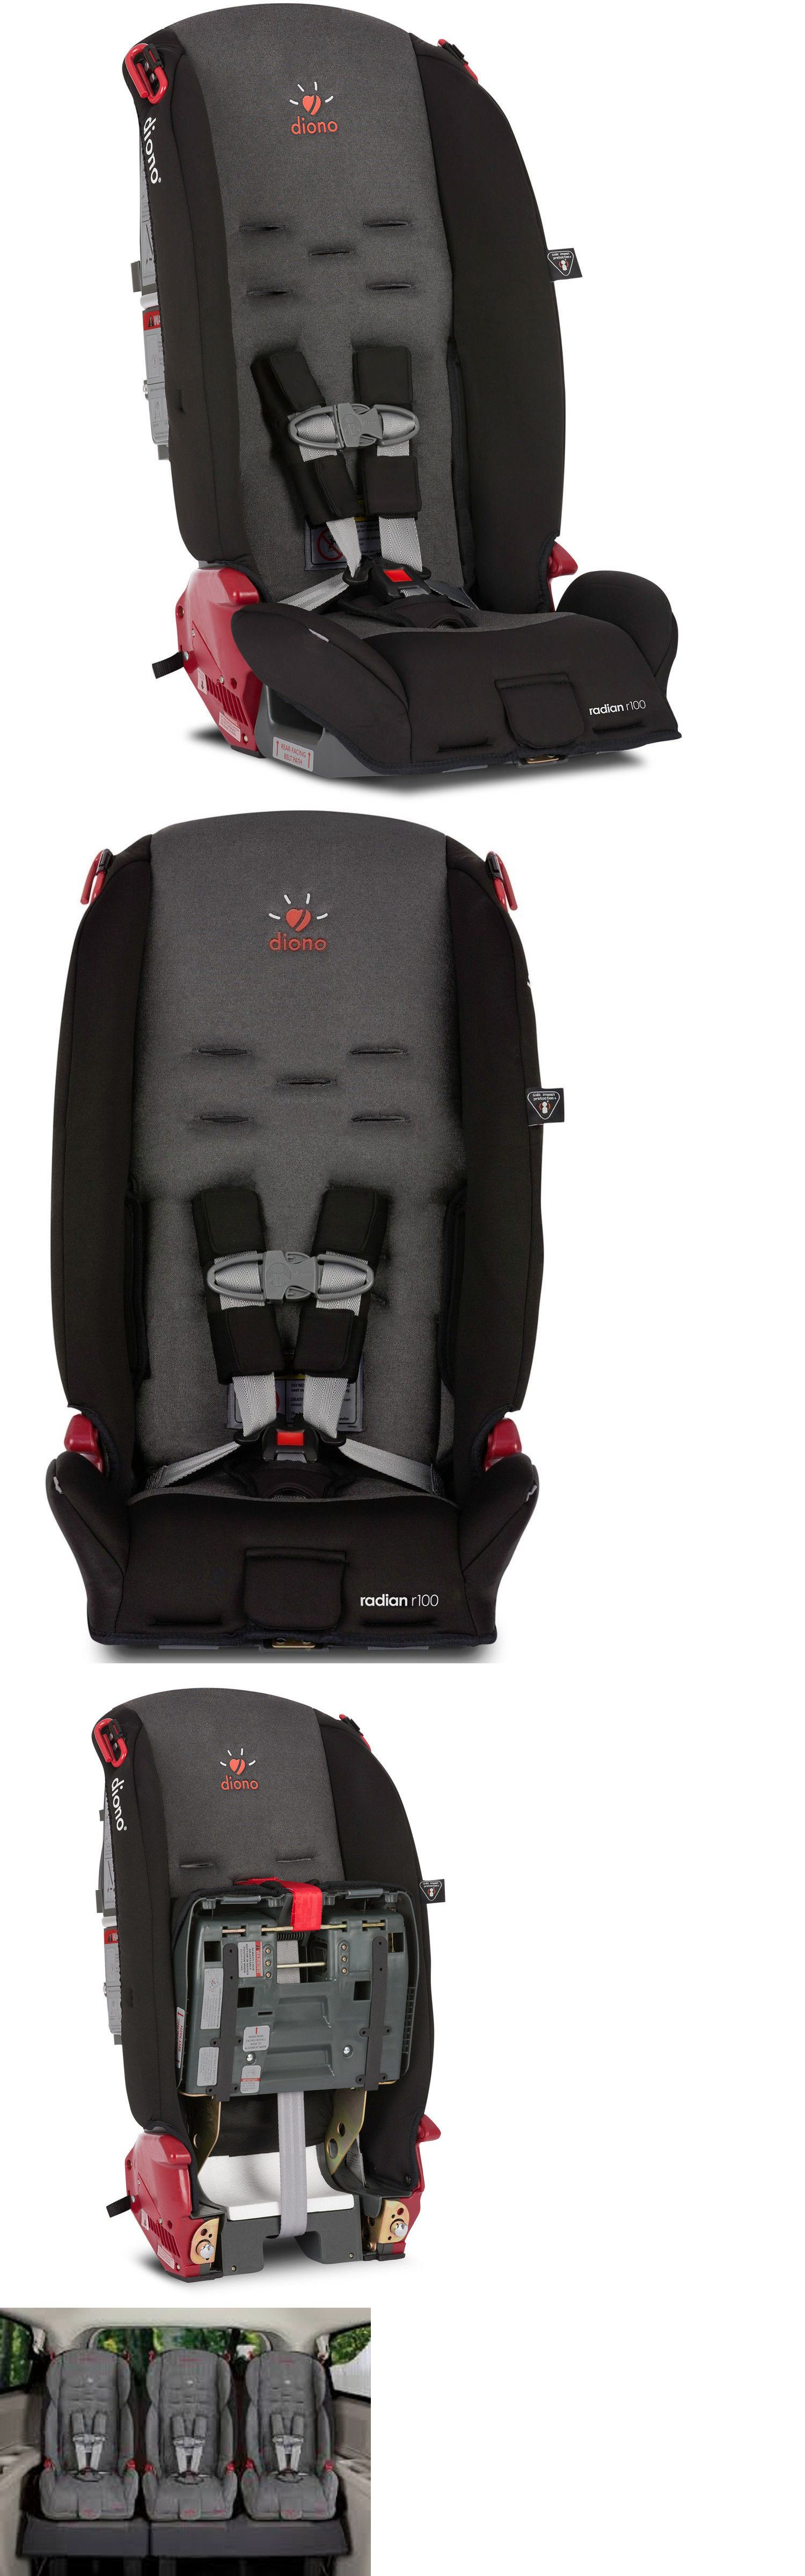 Booster To 80lbs 66694 Diono 2018 Radian R100 Convertible Car Seat In Black Mist Brand New BUY IT NOW ONLY 179 On EBay